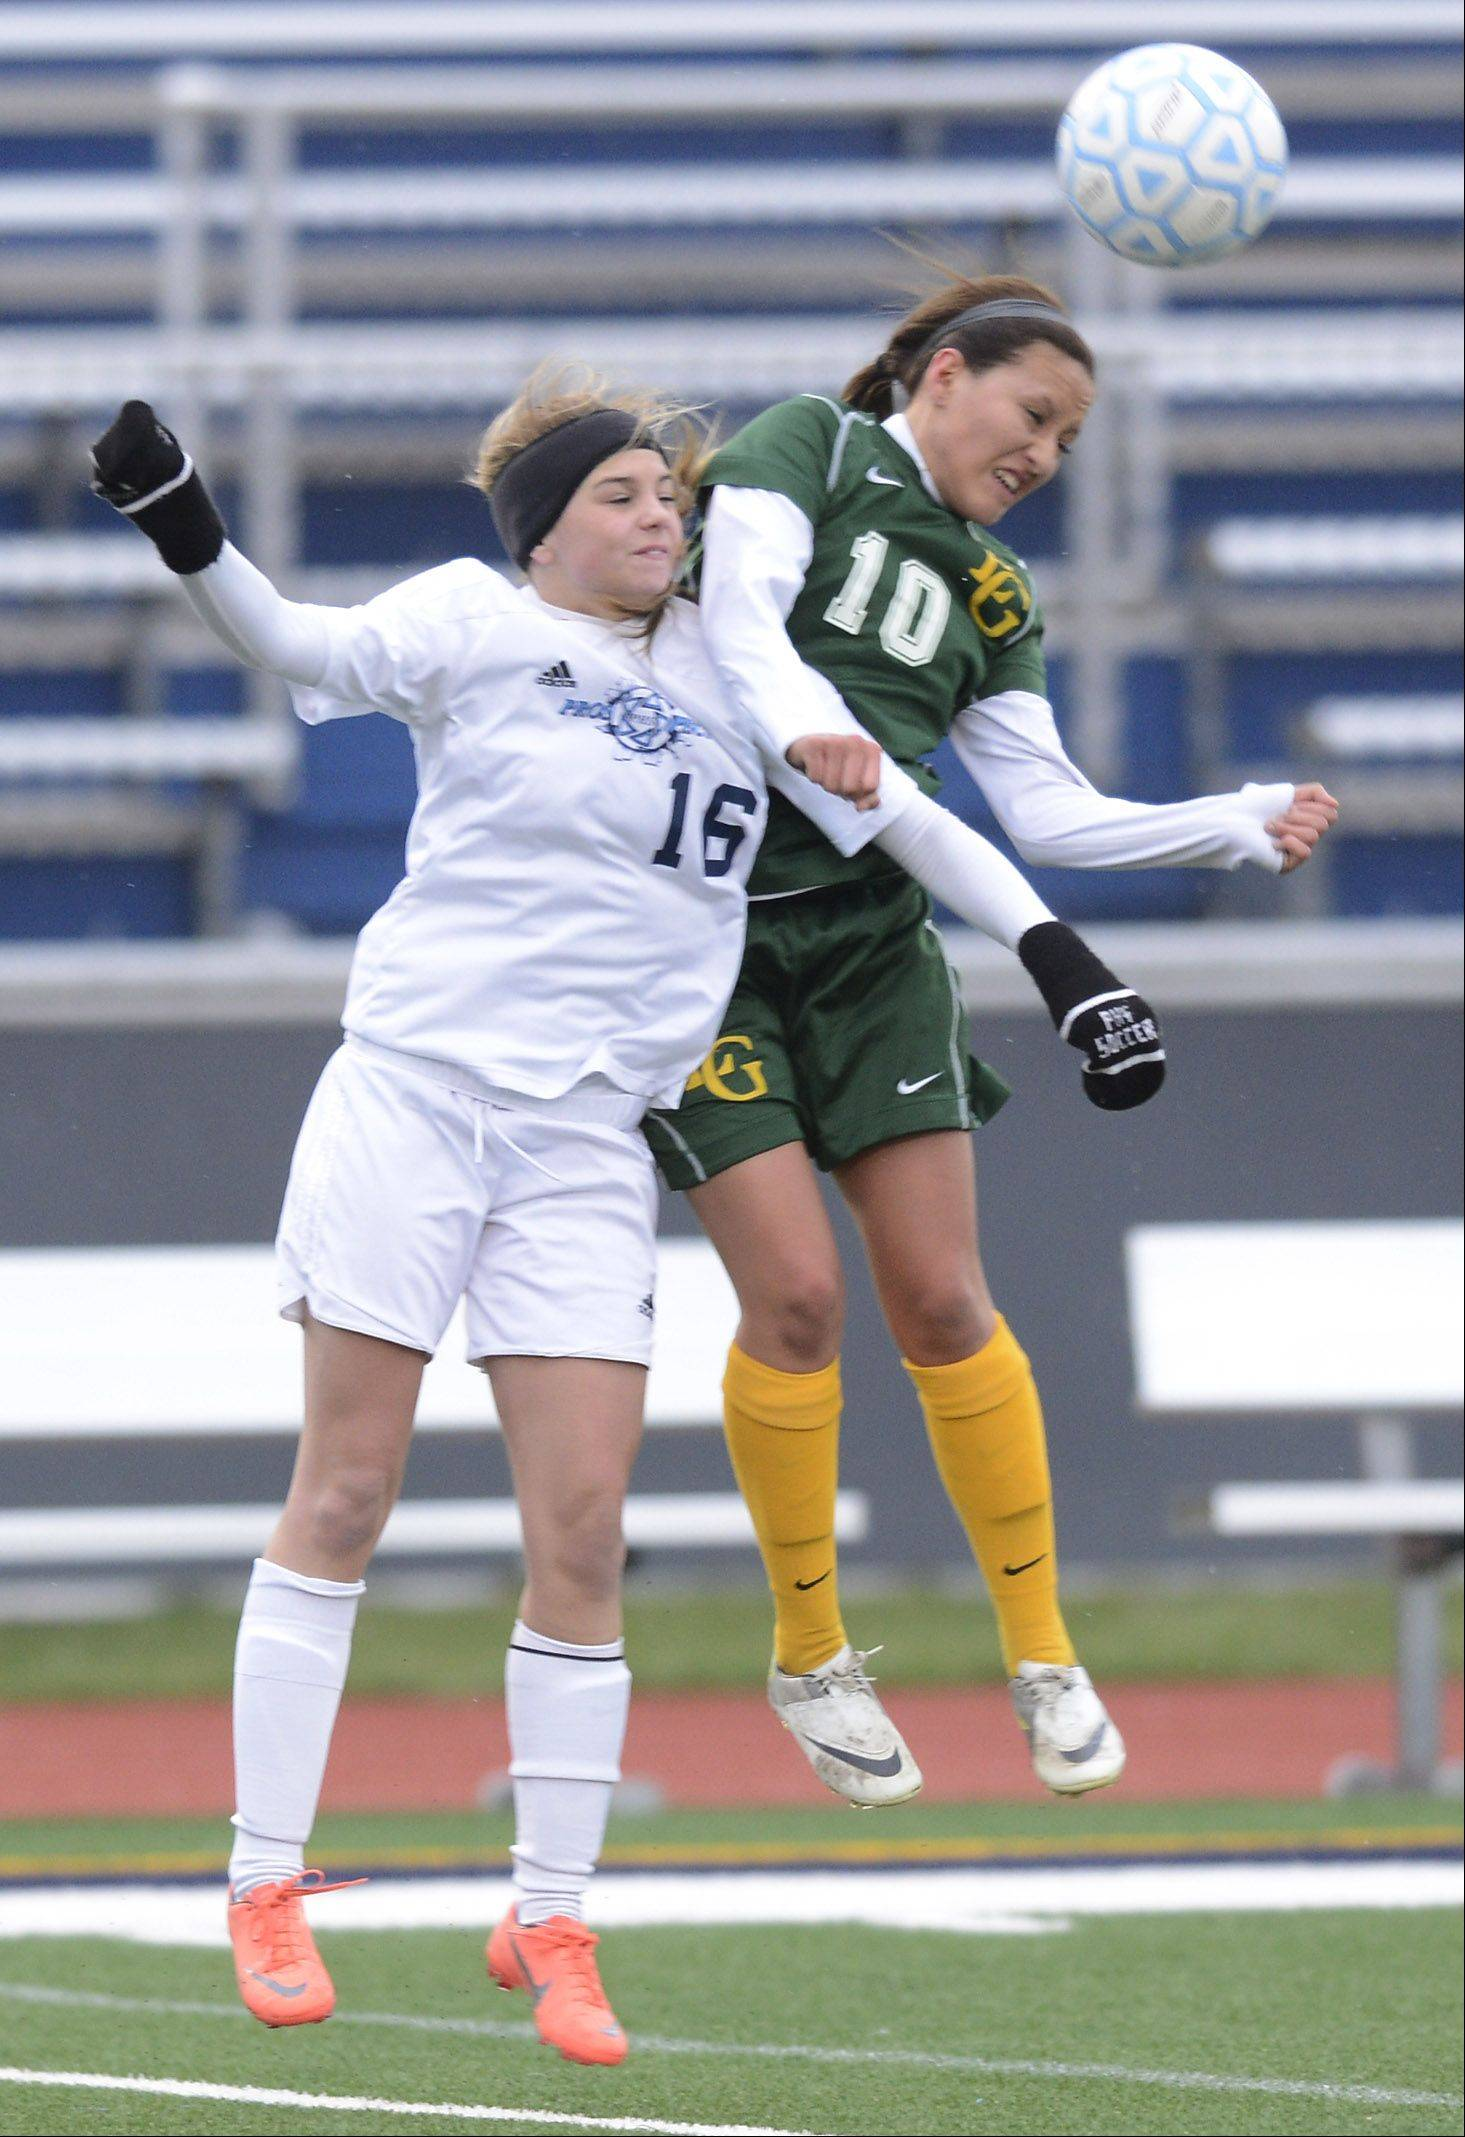 Prospect's Andi Marfilius, left, and Elk Grove's Stephanie Solis leap for a header during Friday's game.